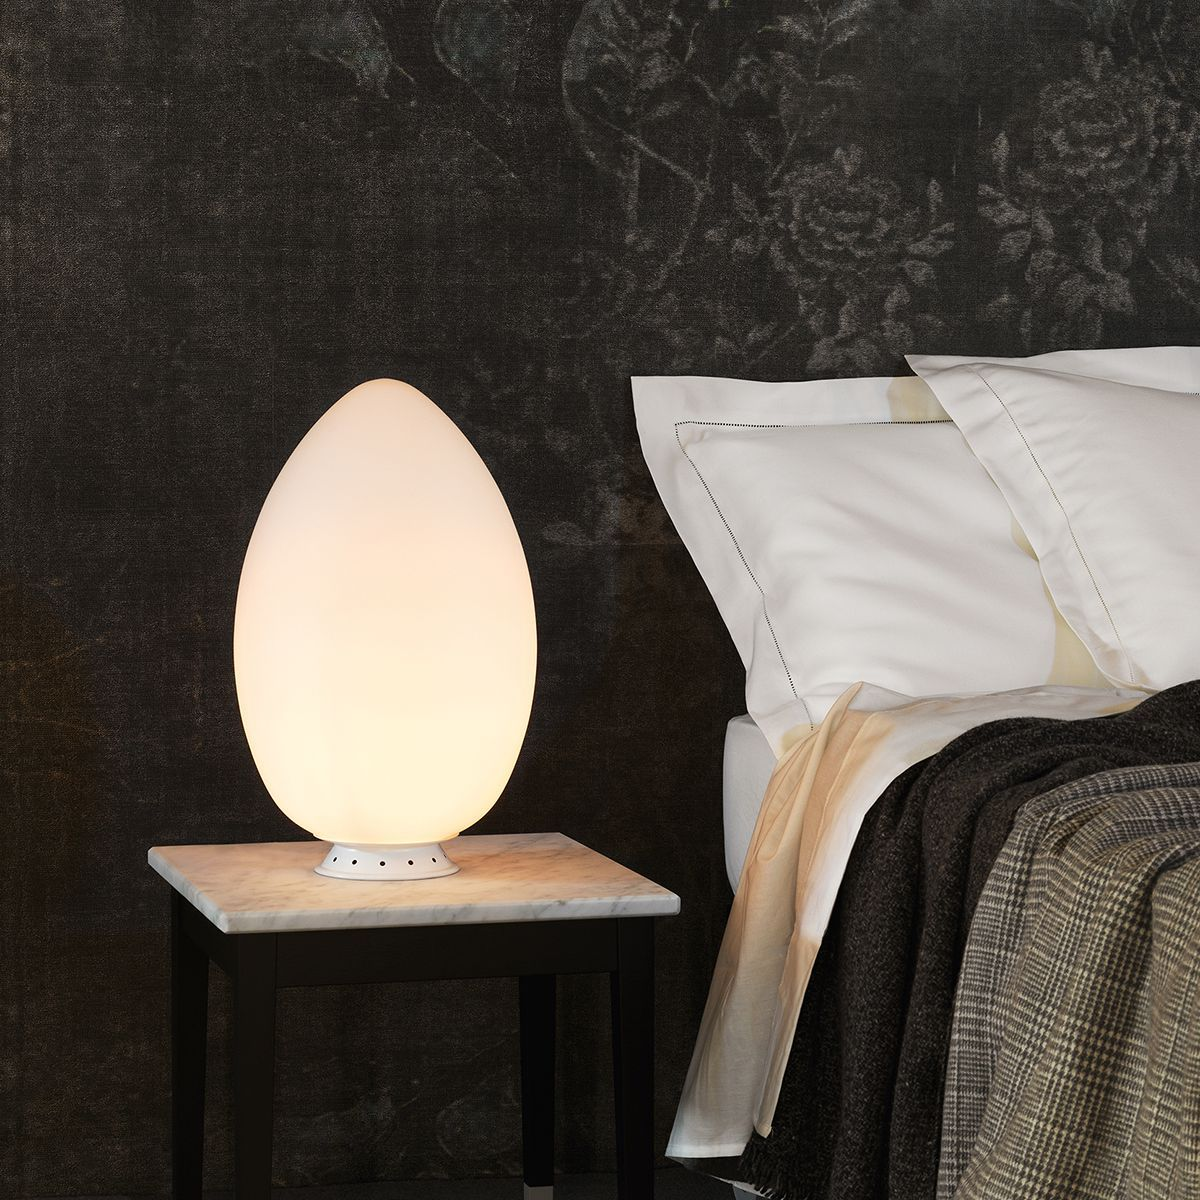 1572969273 213 bedside reading lamps with edgy and quirky designs - Bedside Reading Lamps With Edgy and Quirky Designs